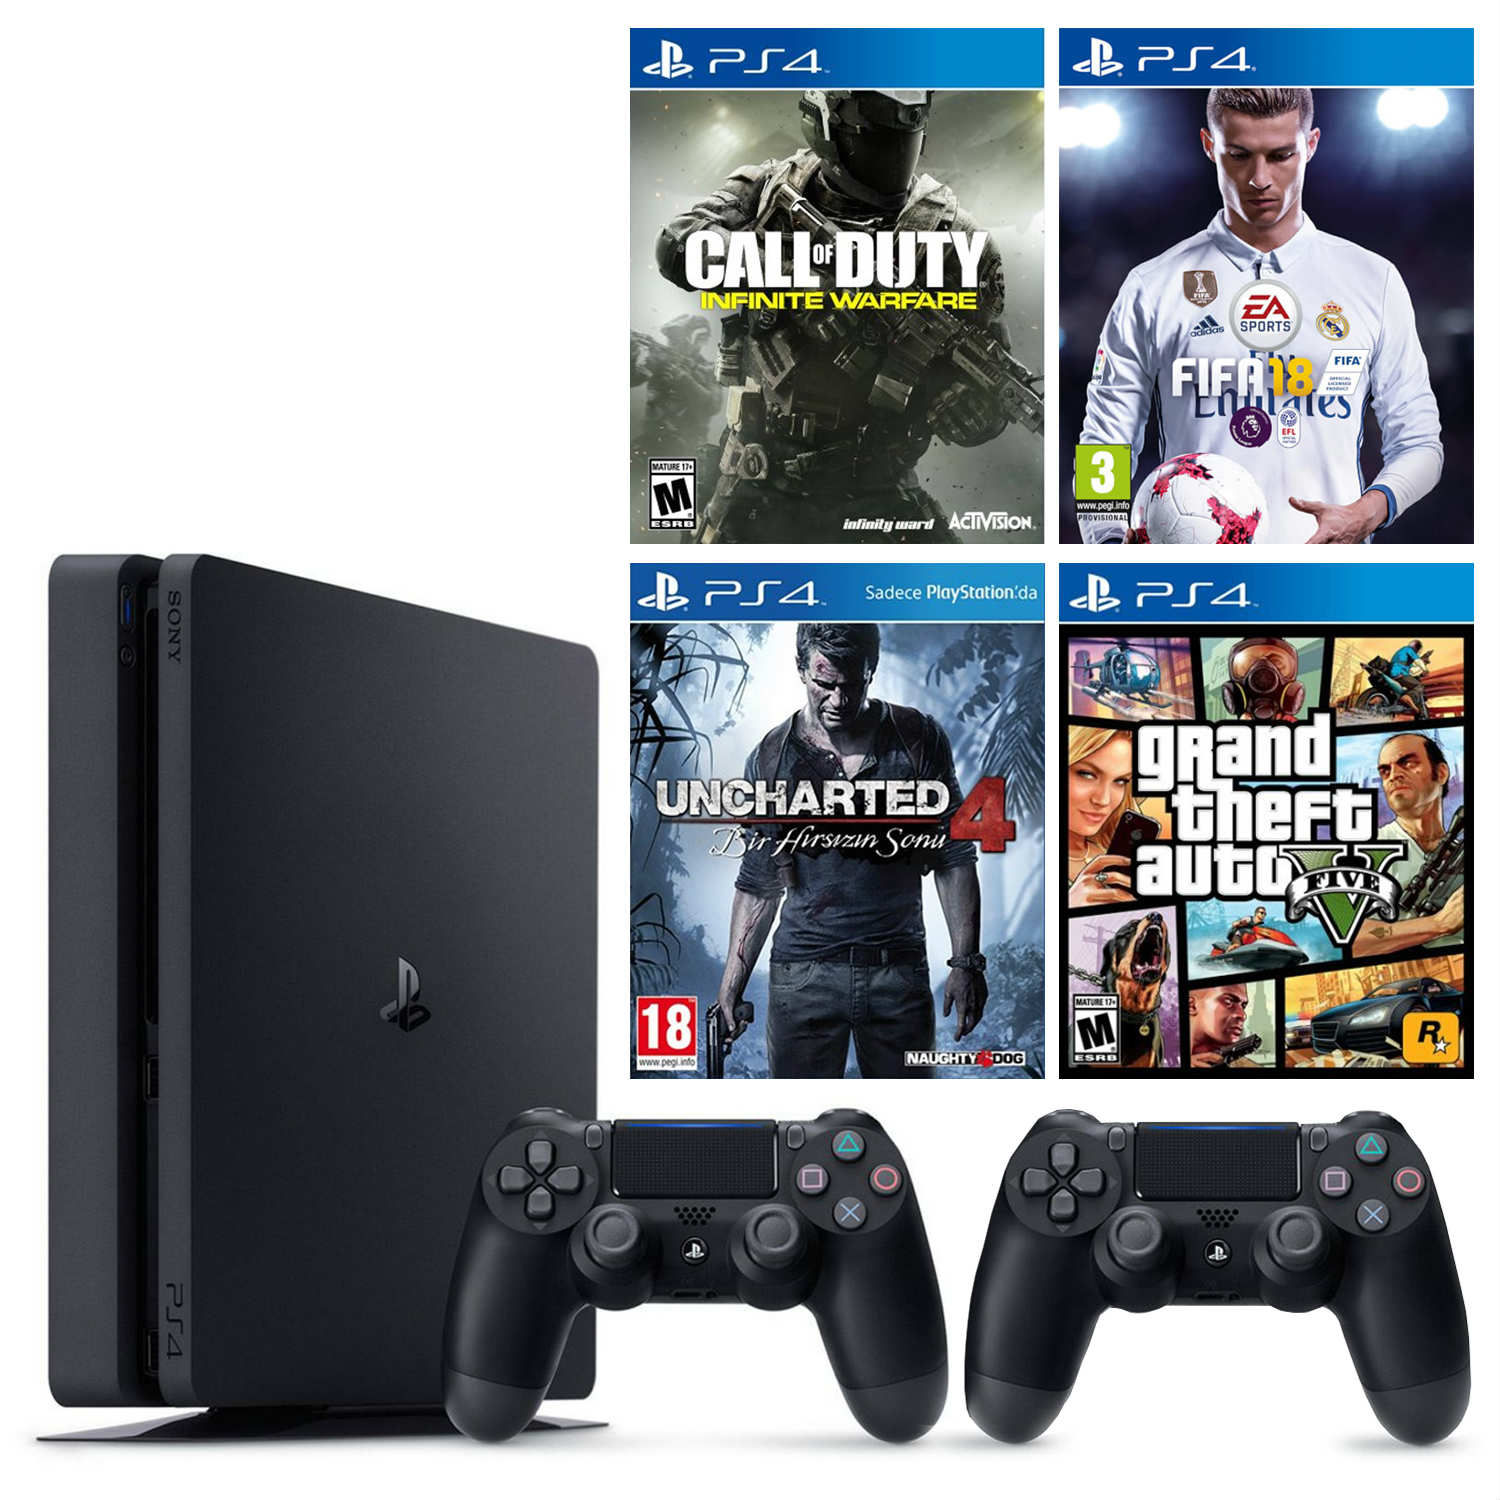 Playstation 4 Slim 1tb Cuh 2016b Cod Infinite Warfare Bundle Sony 1 Tb Systems Bundles Source Ps4 Konsol 2 Kol